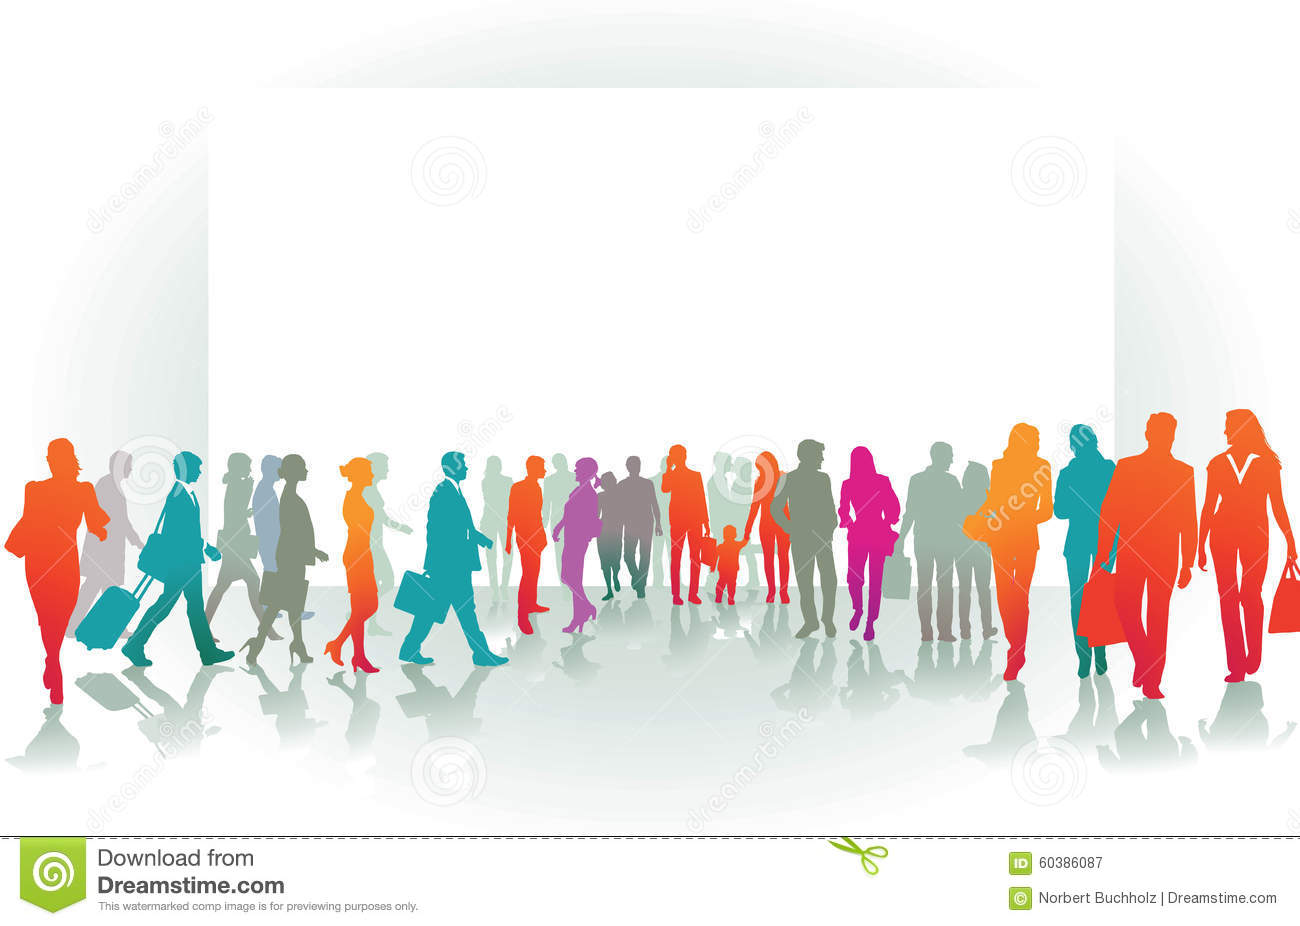 Colorful Silhouettes of People Walking